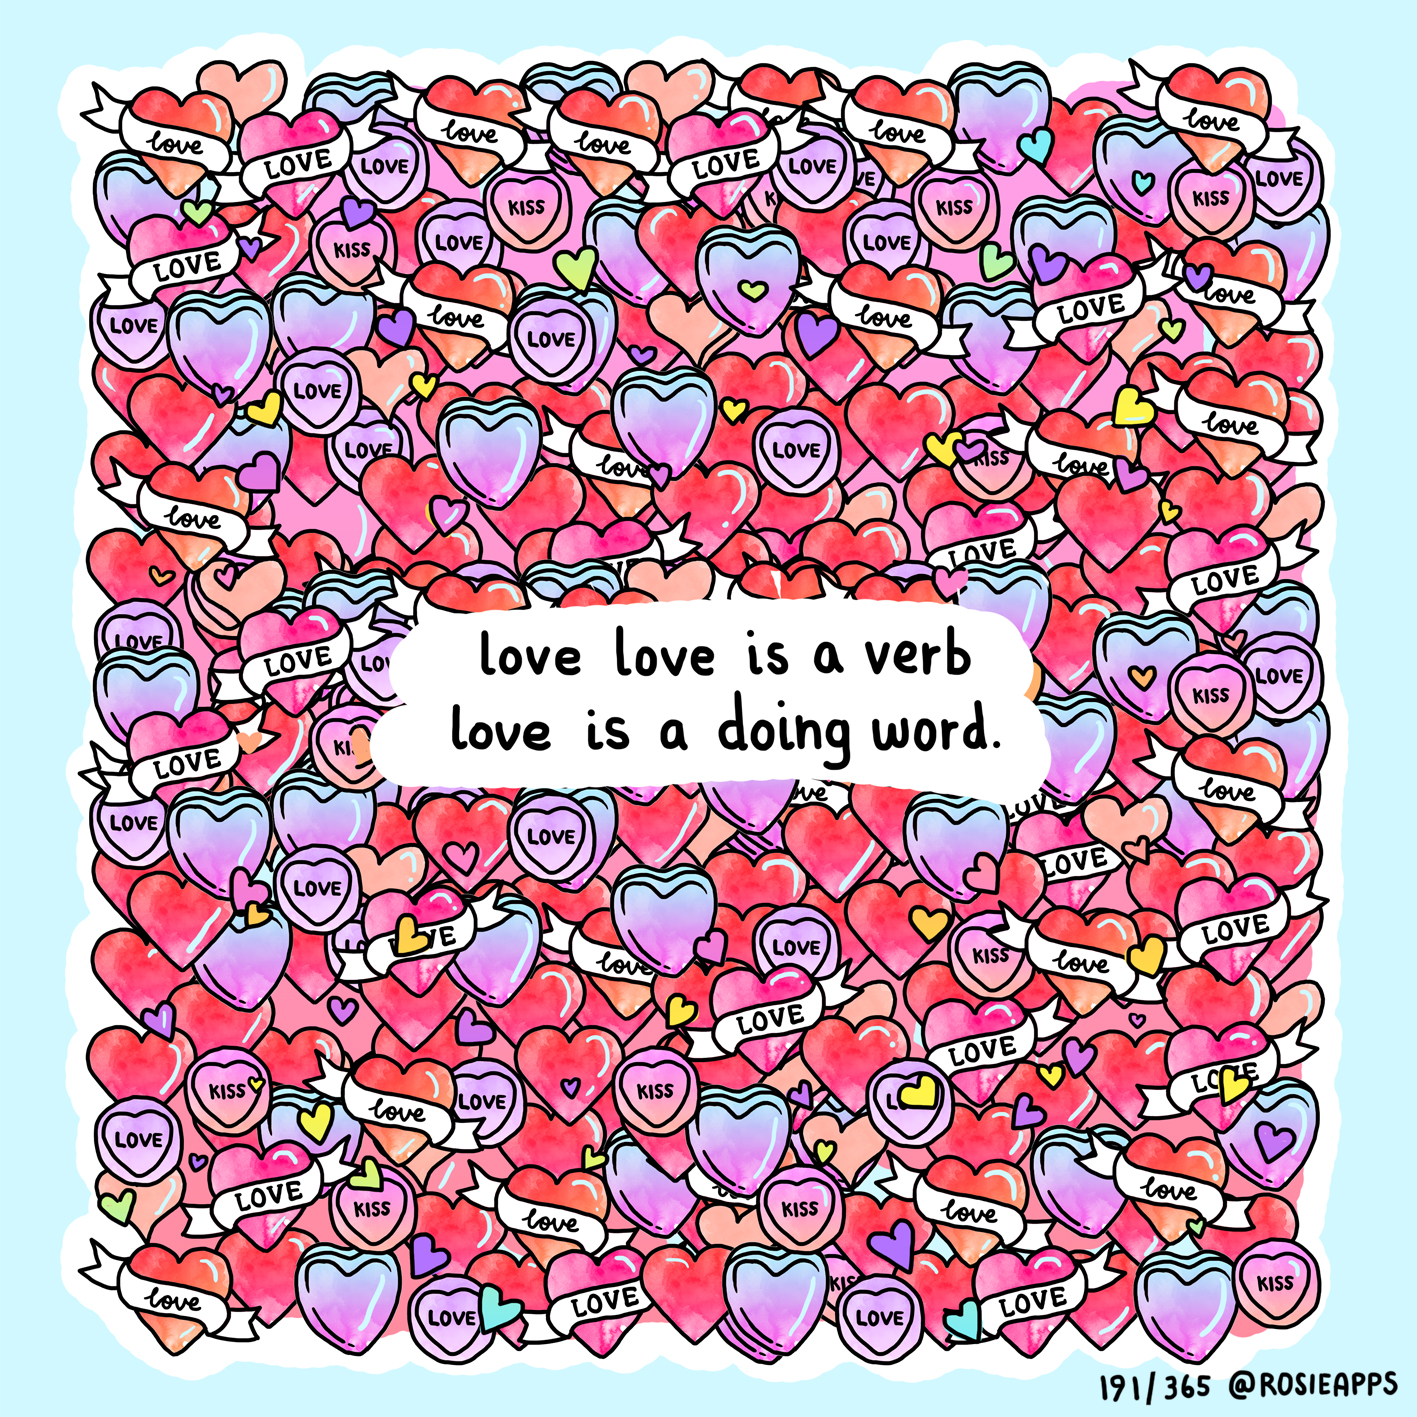 July-191-365 love is a verb small.jpg